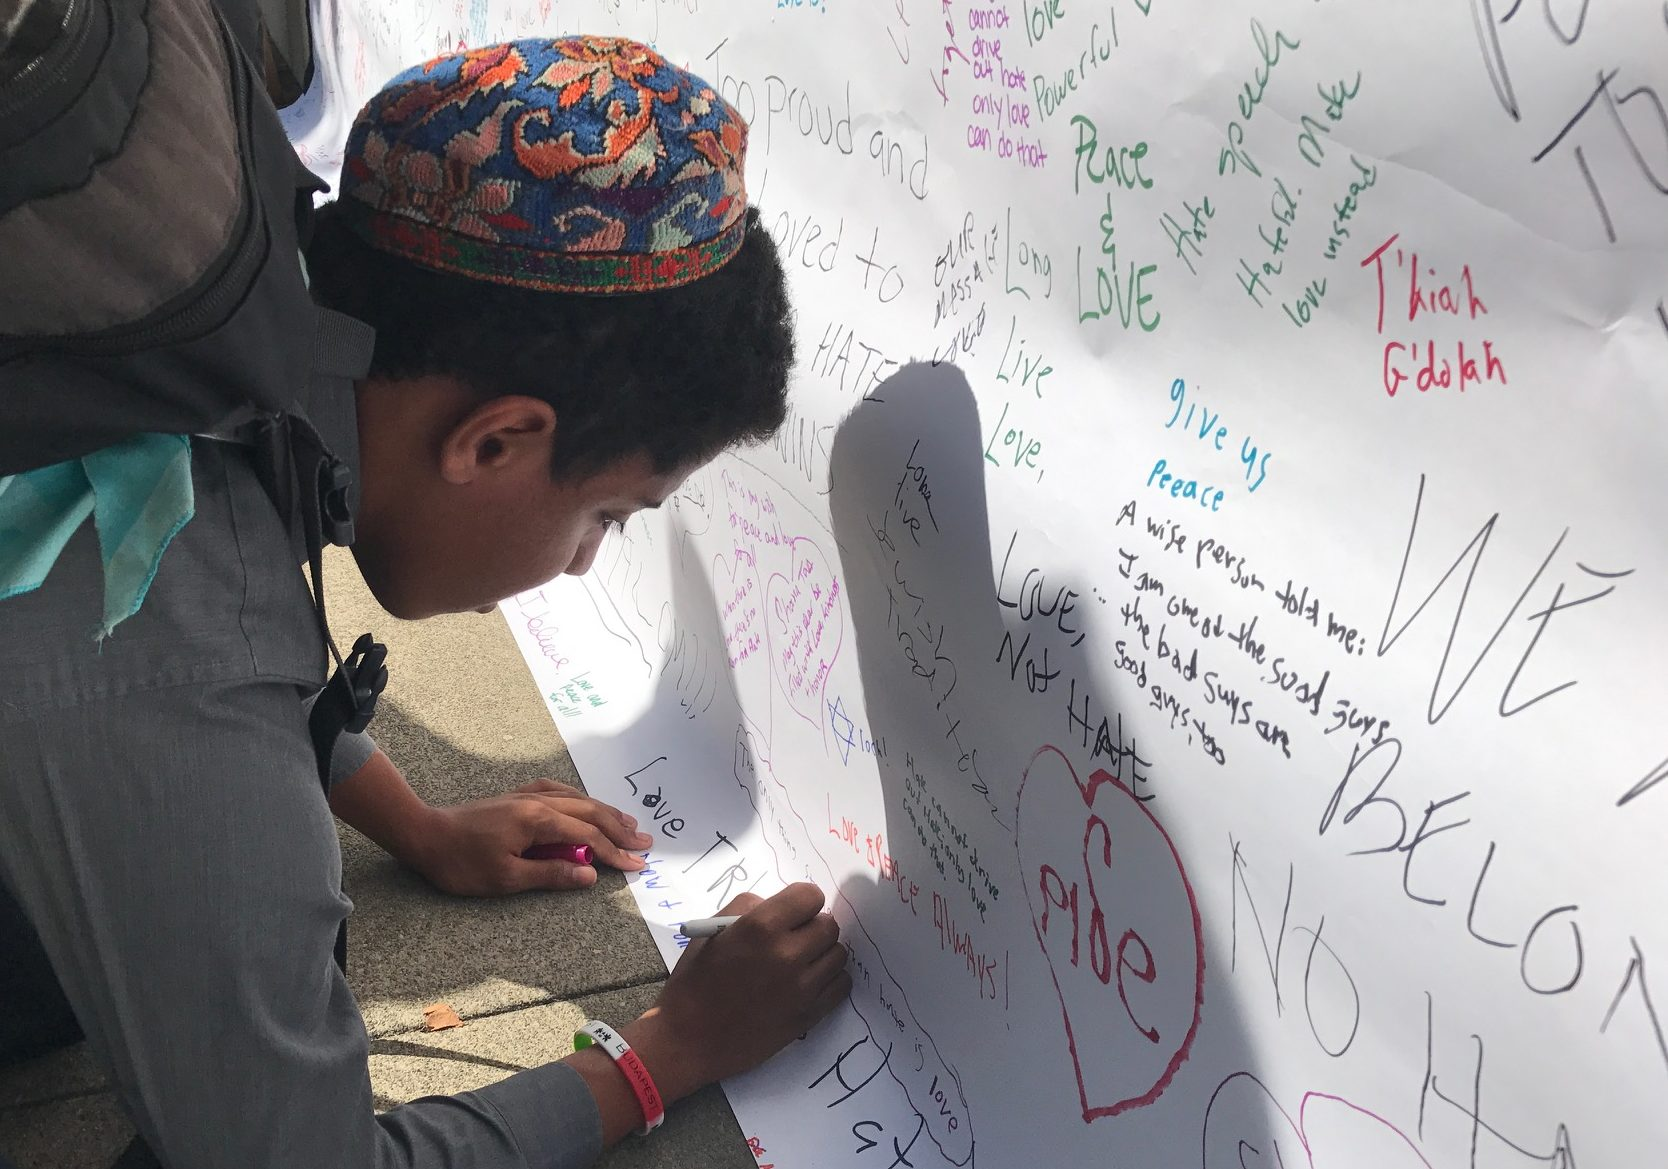 Eric Getreuer, 16, writing butcher paper that was put up over the anti-Semitic graffiti defacing Temple Israel (Photo/Sue Fishkoff)